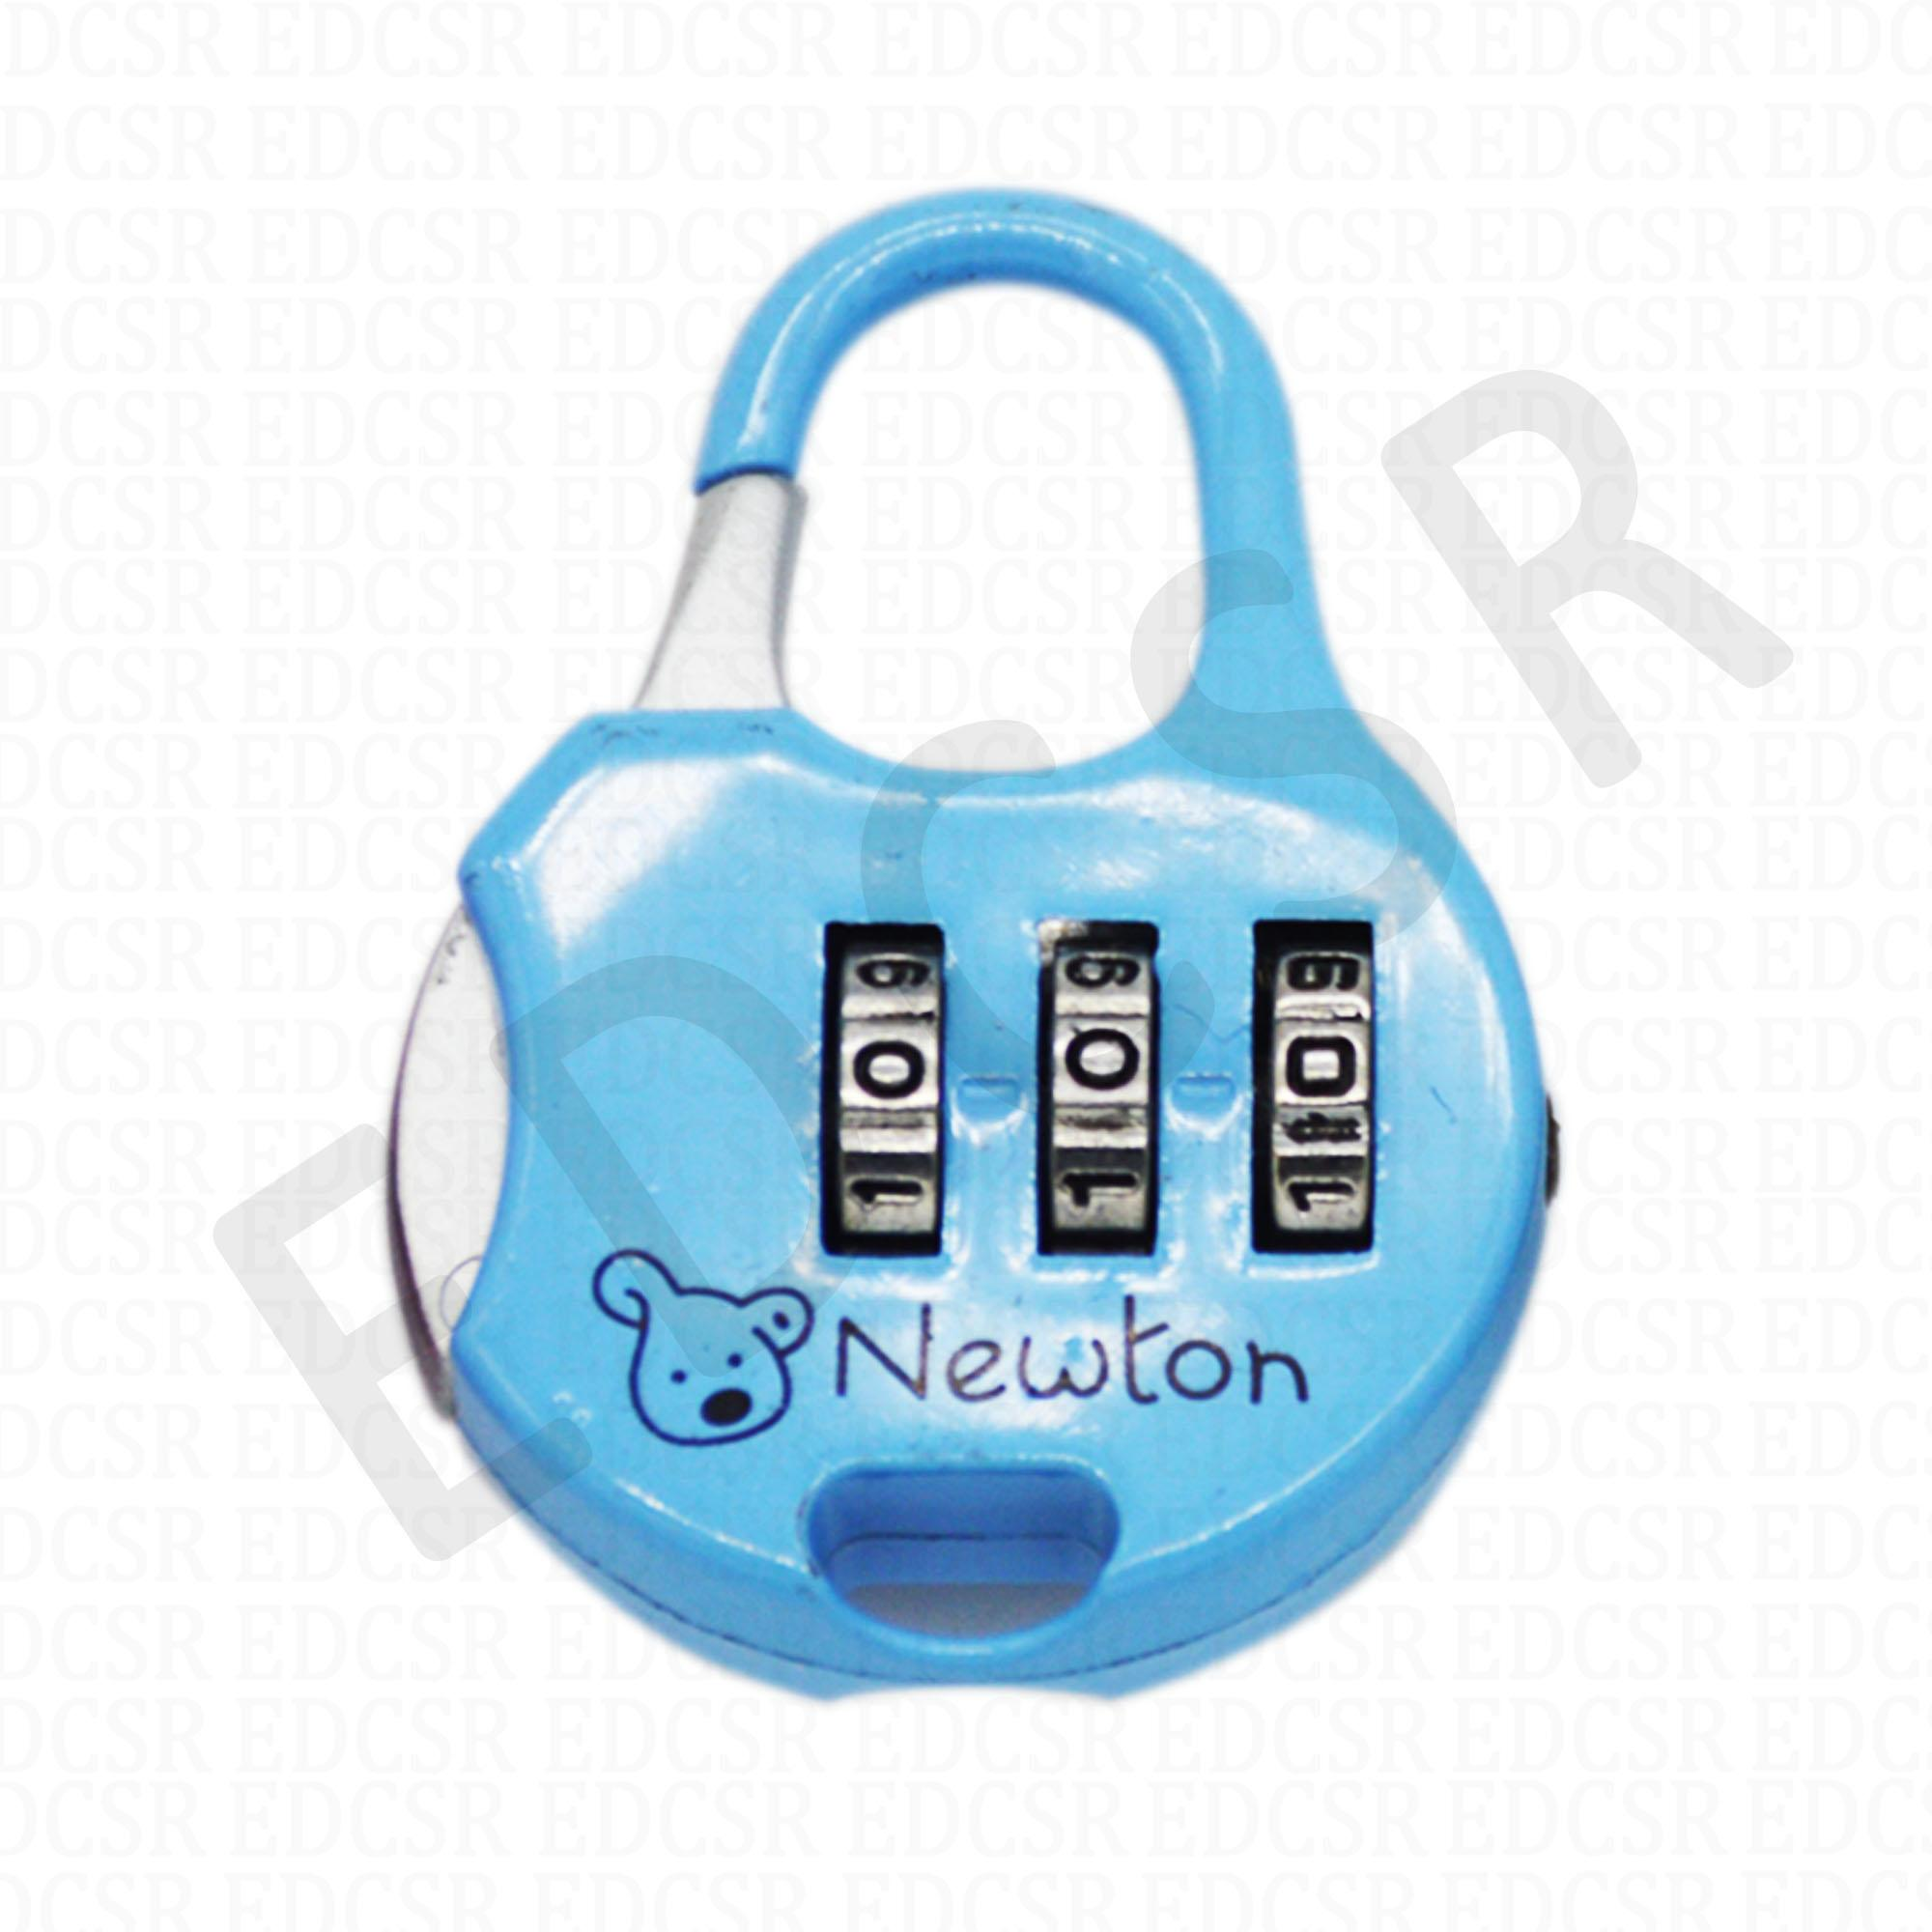 c0483b2f1 Mini Padlock 3 Digit Combination Lock For Travel Luggage And Bags - Ch15b -  Blue By